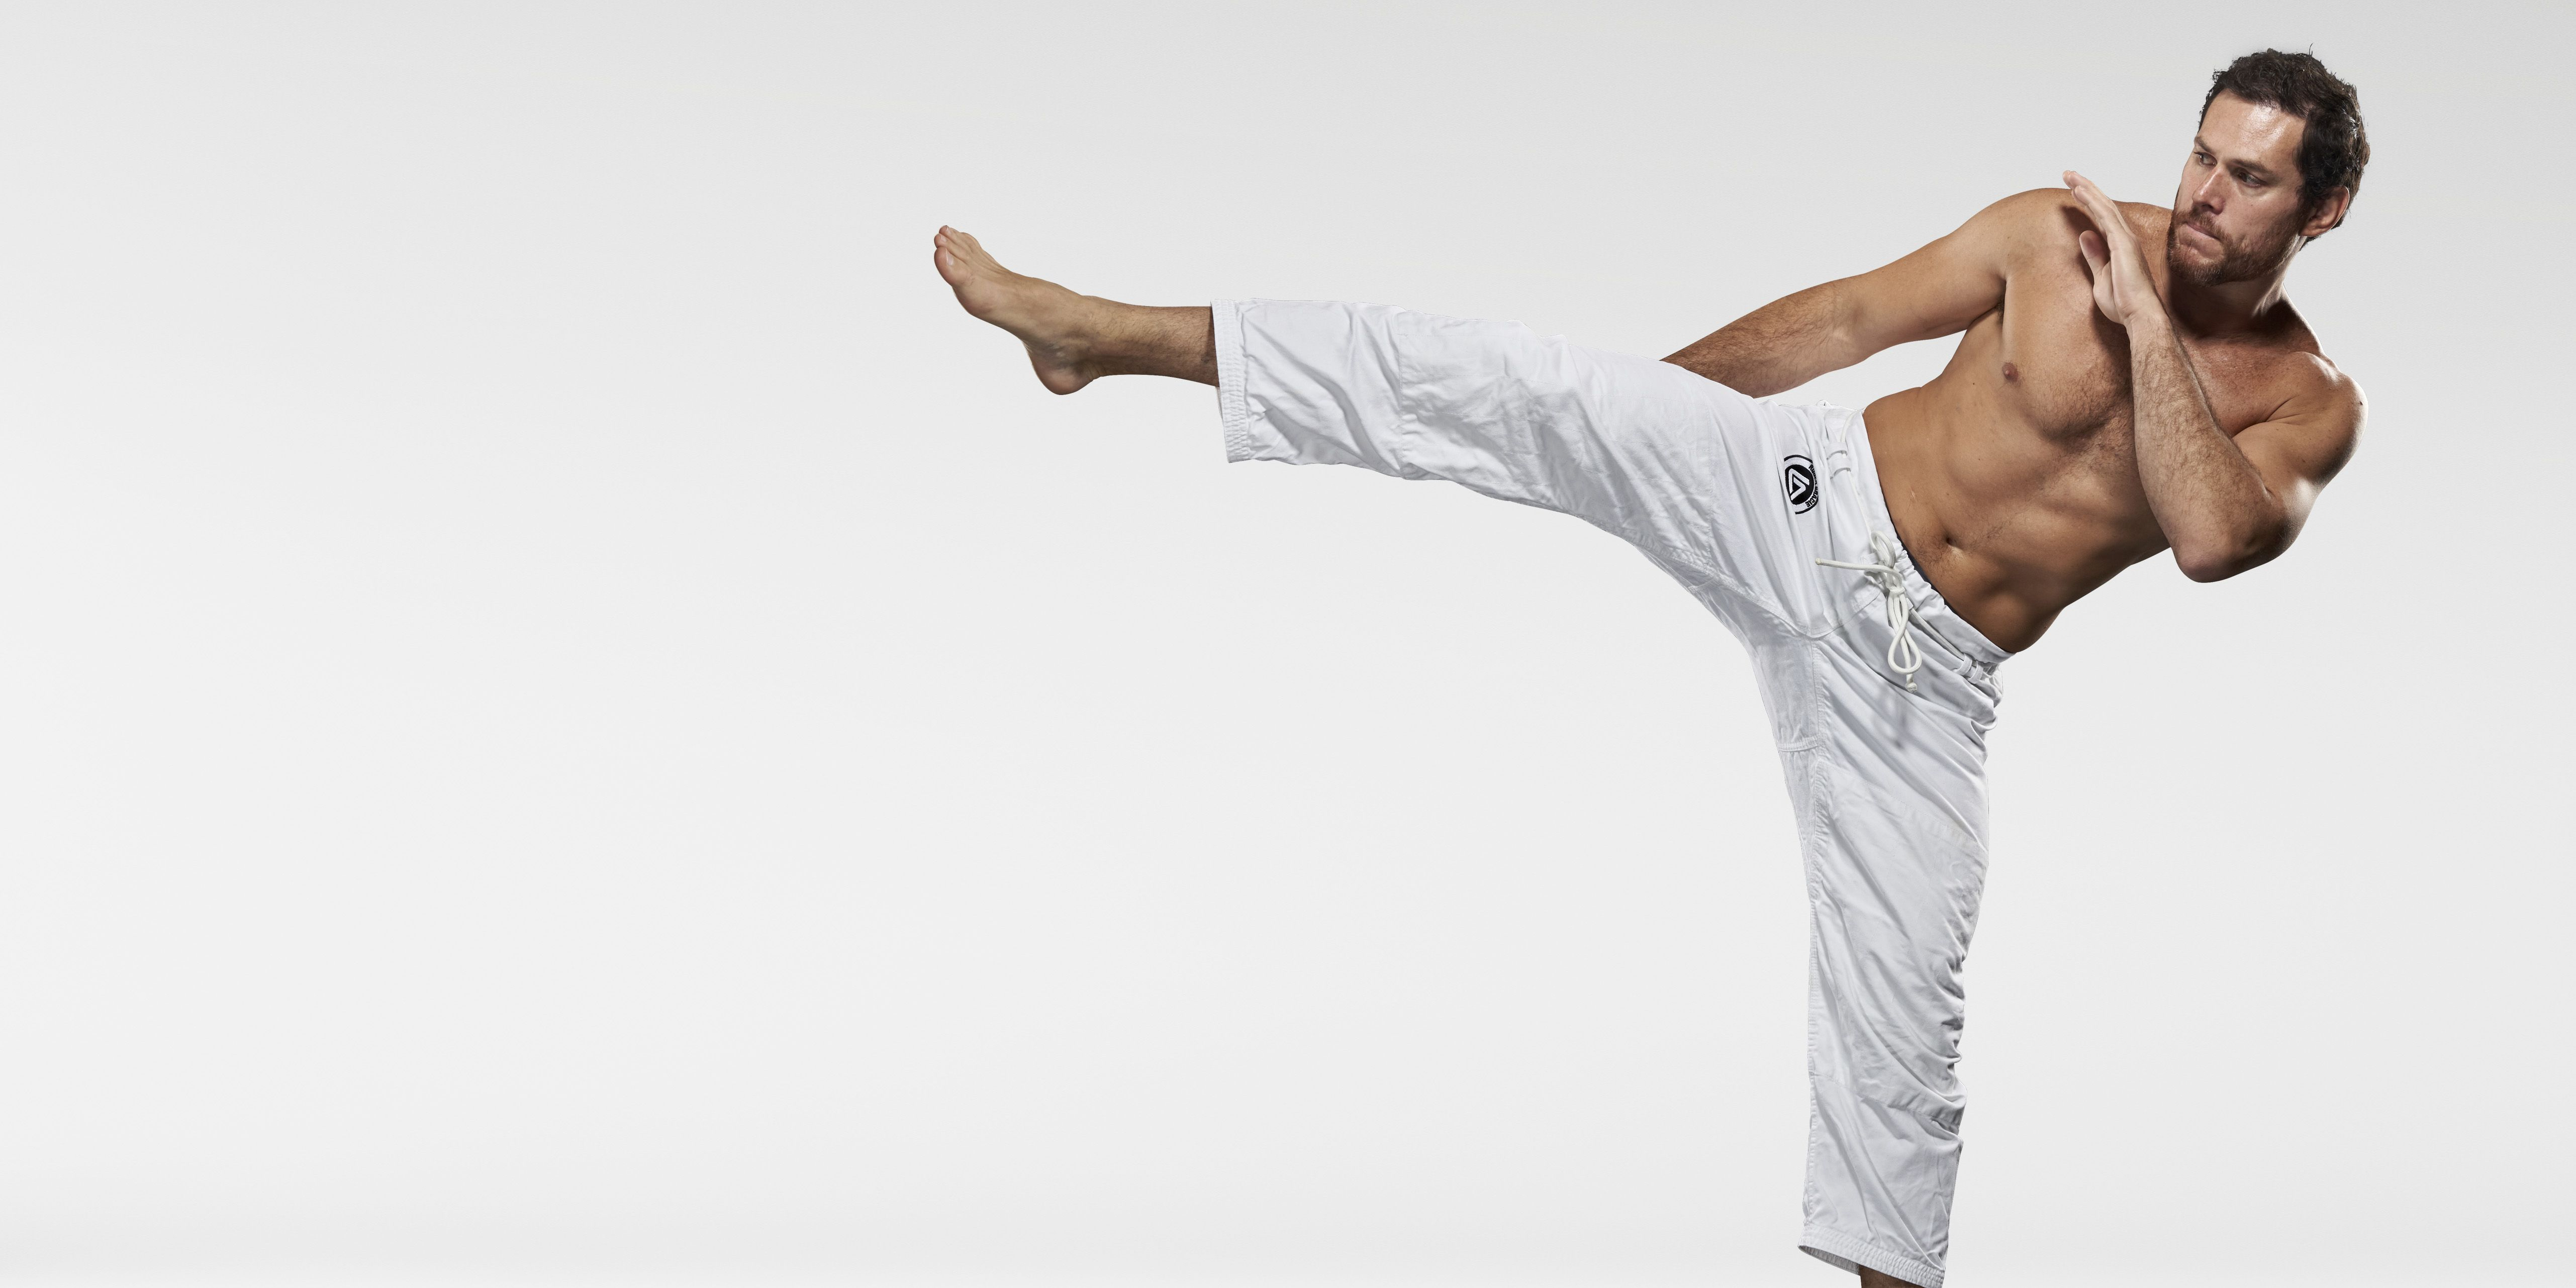 How I Built My Body: Roger Gracie